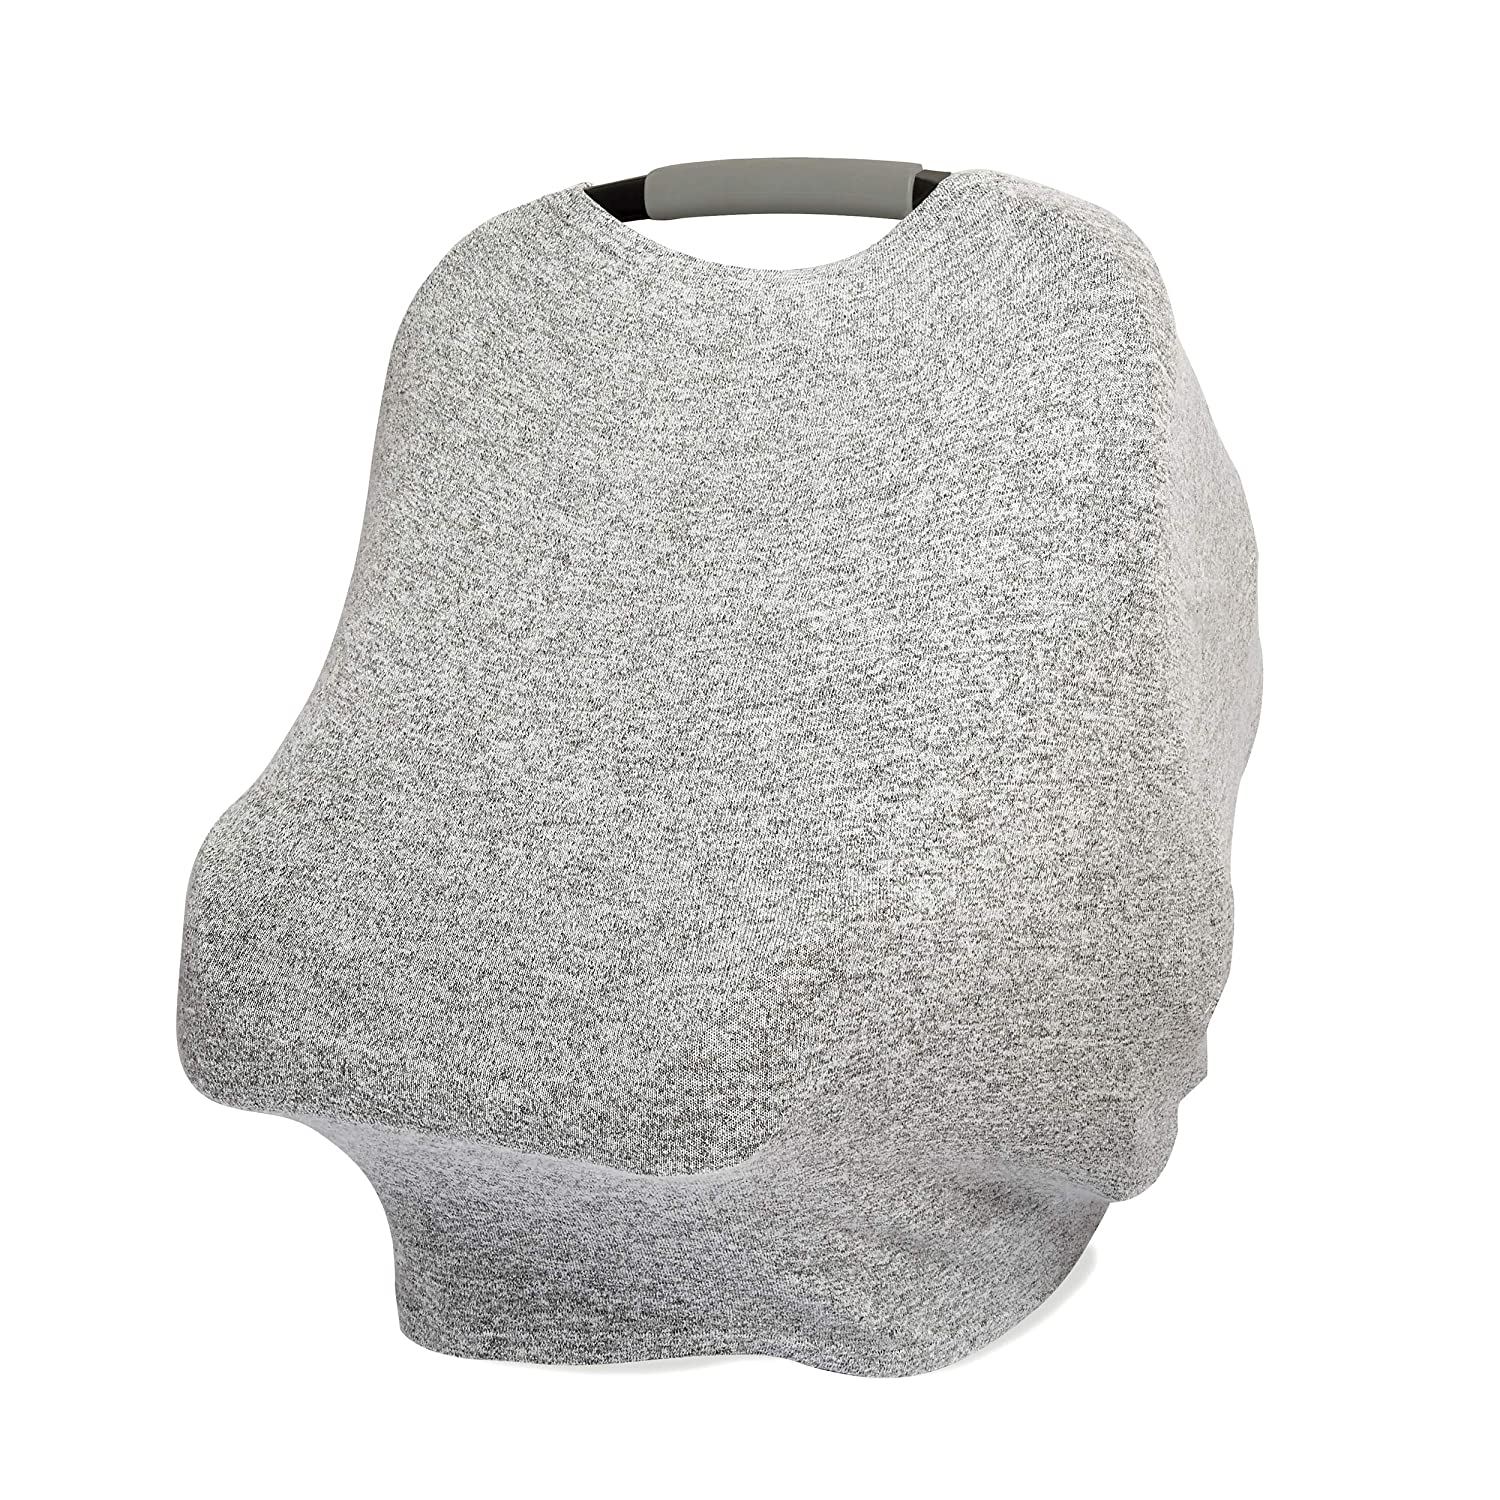 anais Snuggle Knit 6-in-1 Stretchy Multi-Use Cover for Car Seat Rosettes Nursing High Chair Cart Infinity Scarf Baby Swing aden